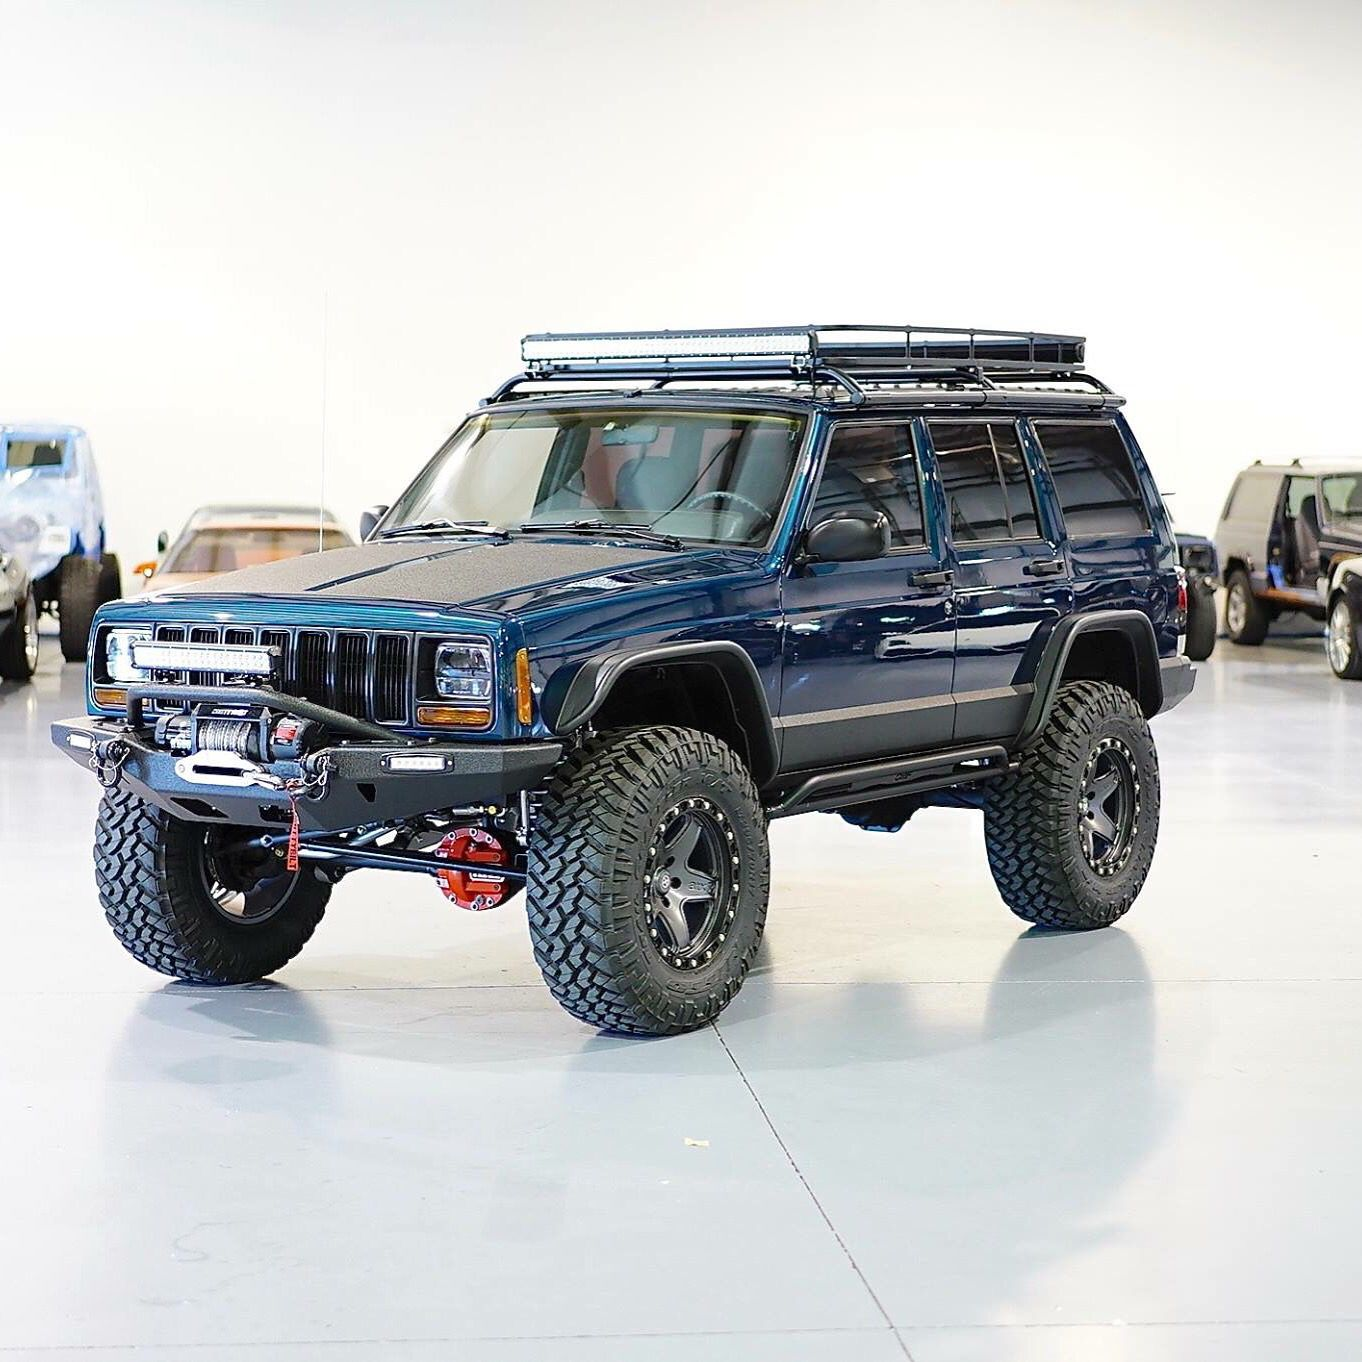 lifted jeep cherokee by davis autosports four wheels of fury pinterest lifted jeep. Black Bedroom Furniture Sets. Home Design Ideas